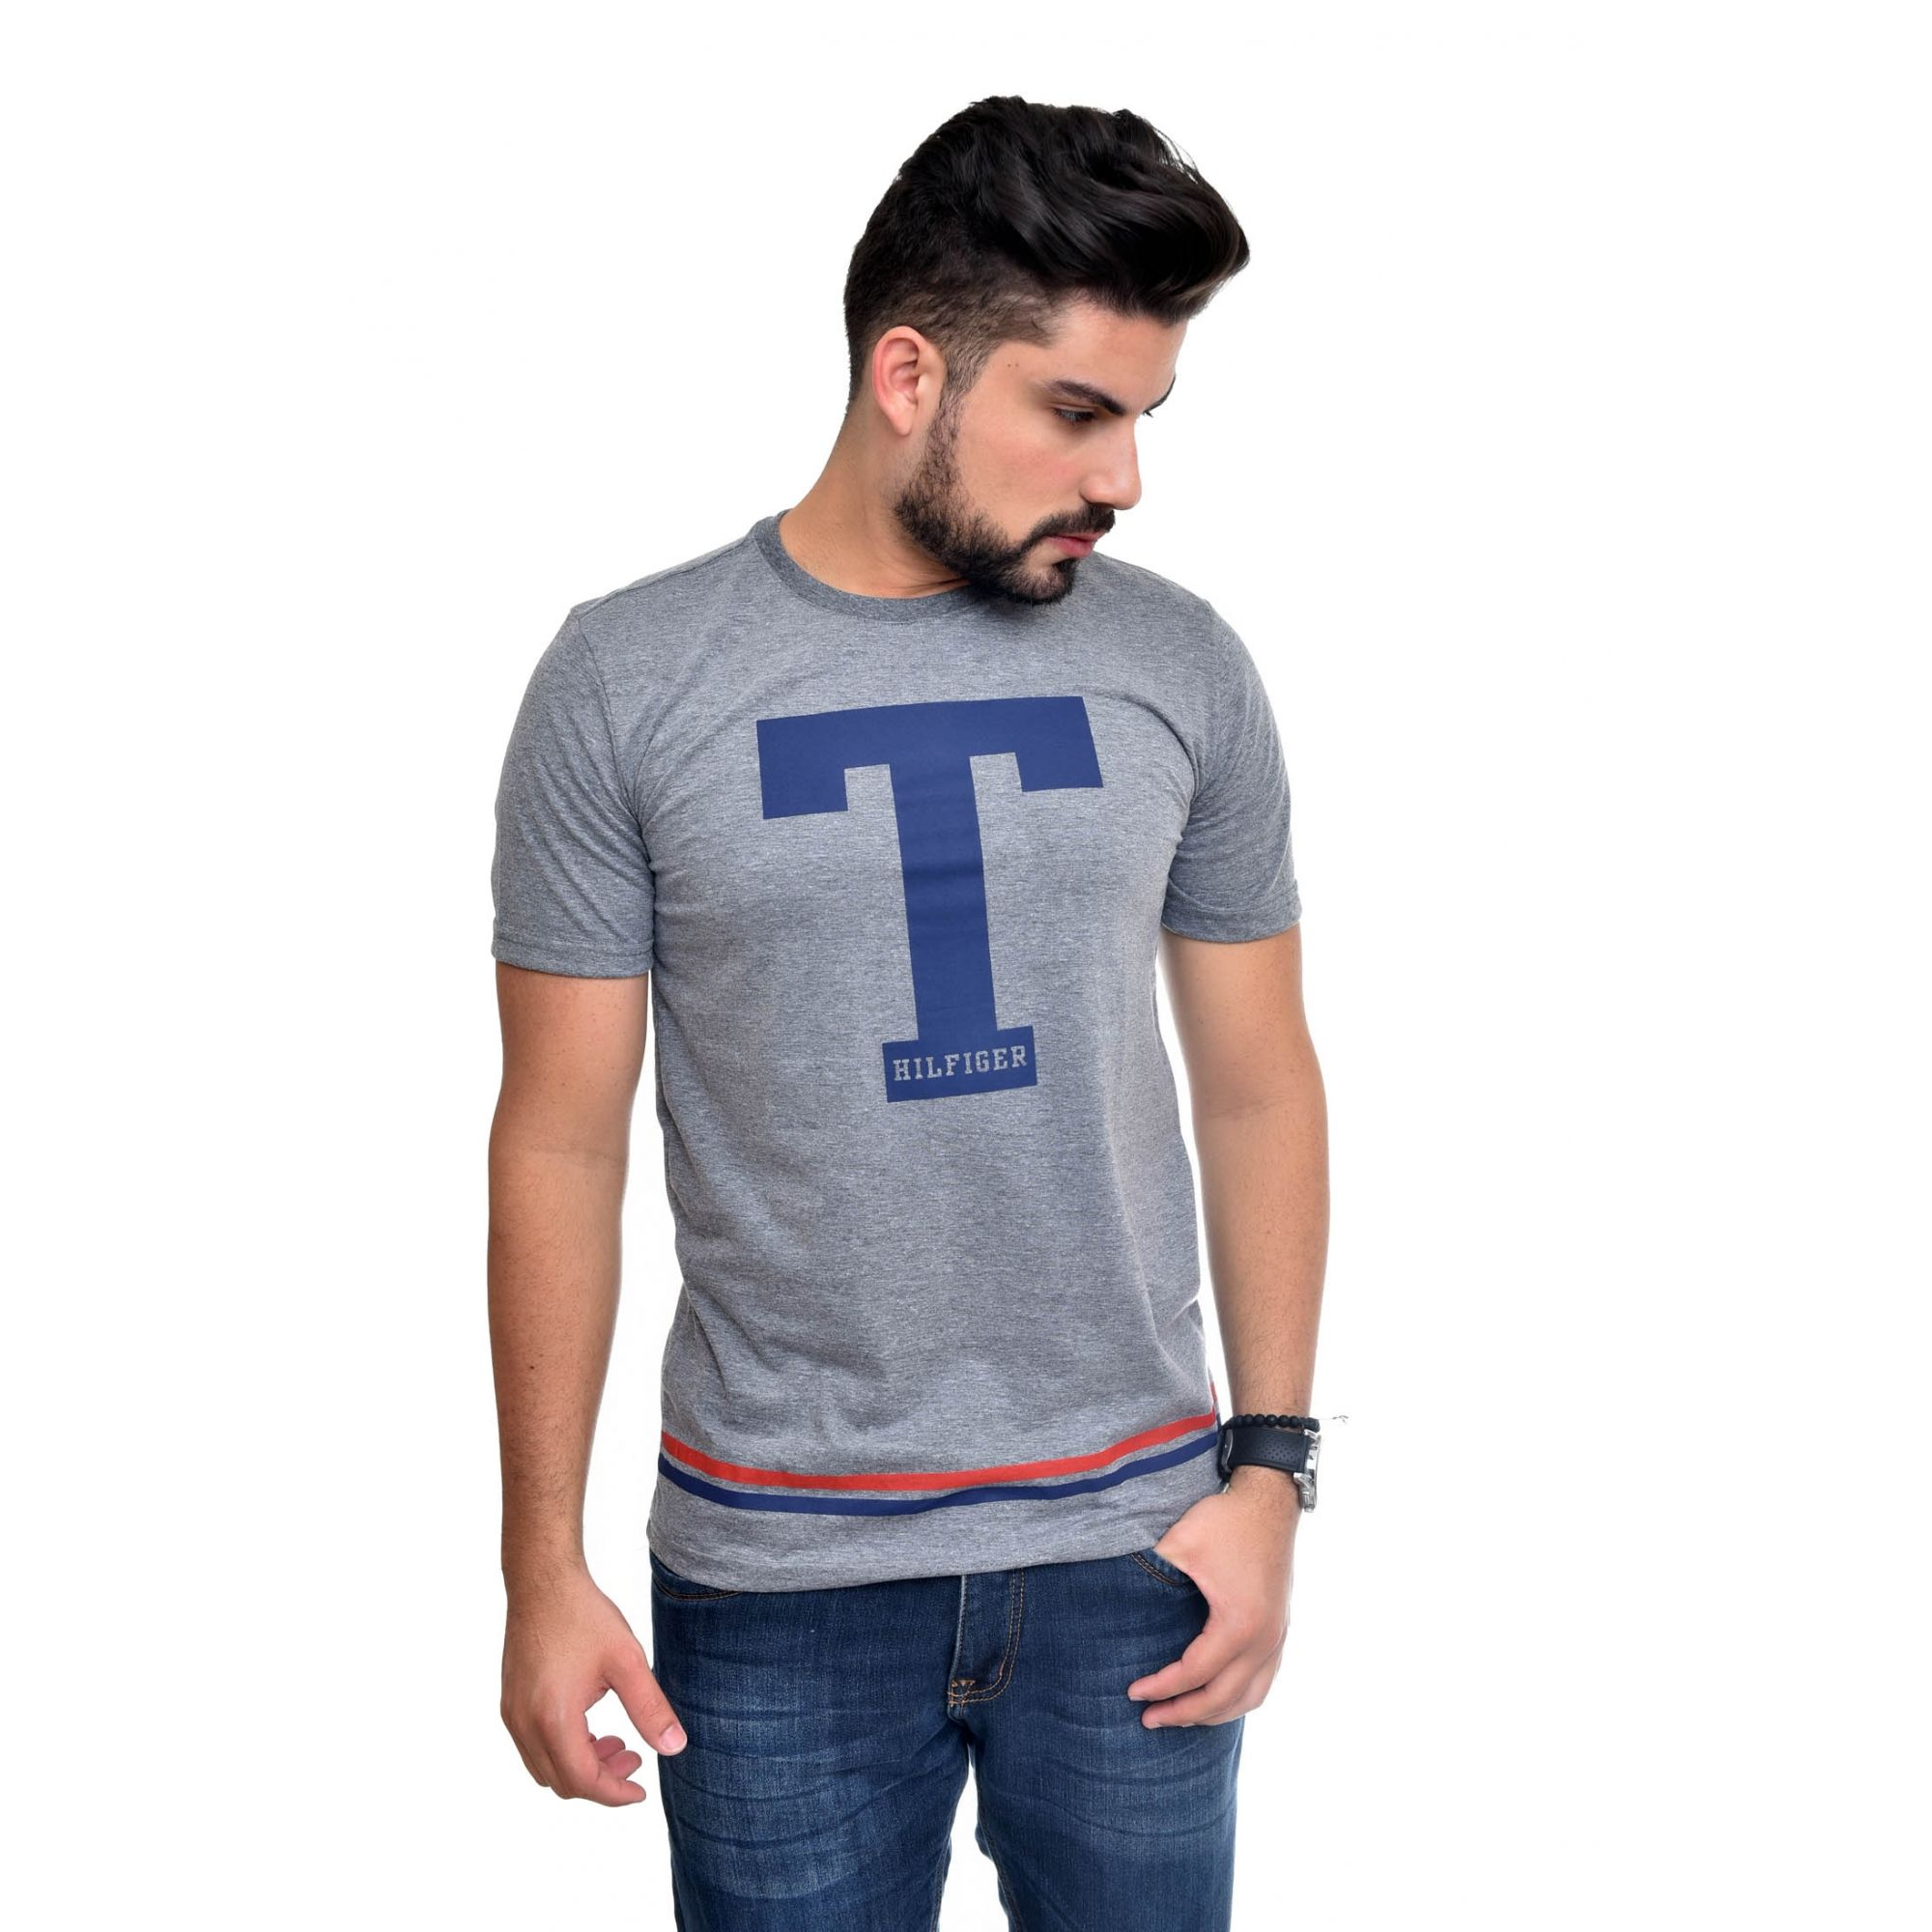 Camiseta TH Big T Mescla Escuro